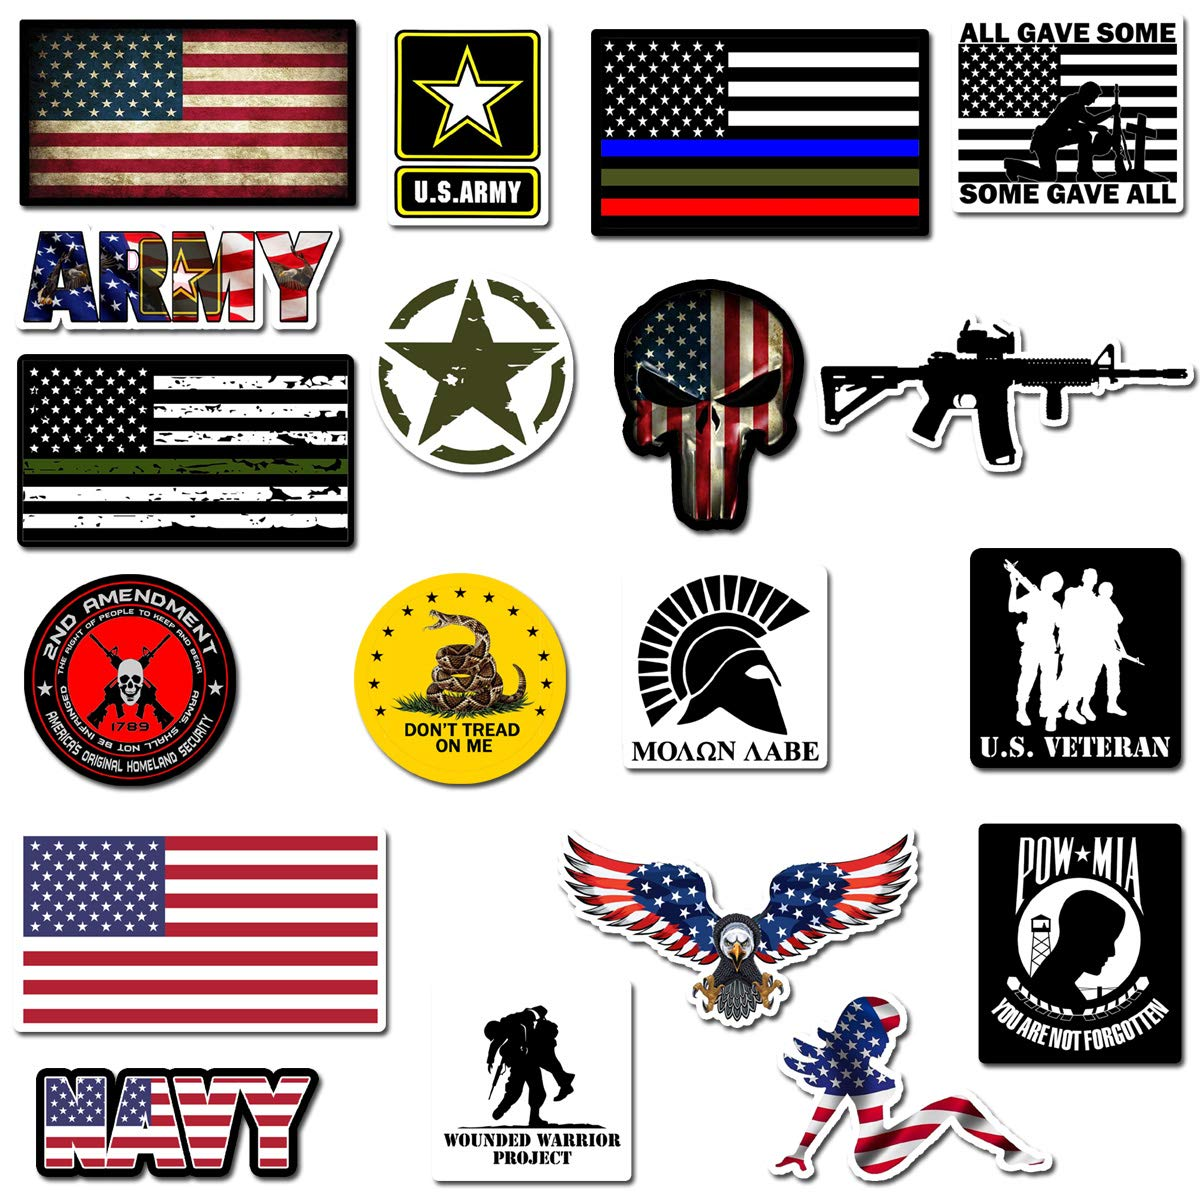 Hard Hat Stickers, Premium Thick Funny Vinyl Decals for Hardhat, Helmet, Toolbox, Laptop, Mug, Car Bumper and More | Waterproof | American Flag (Military Assort)